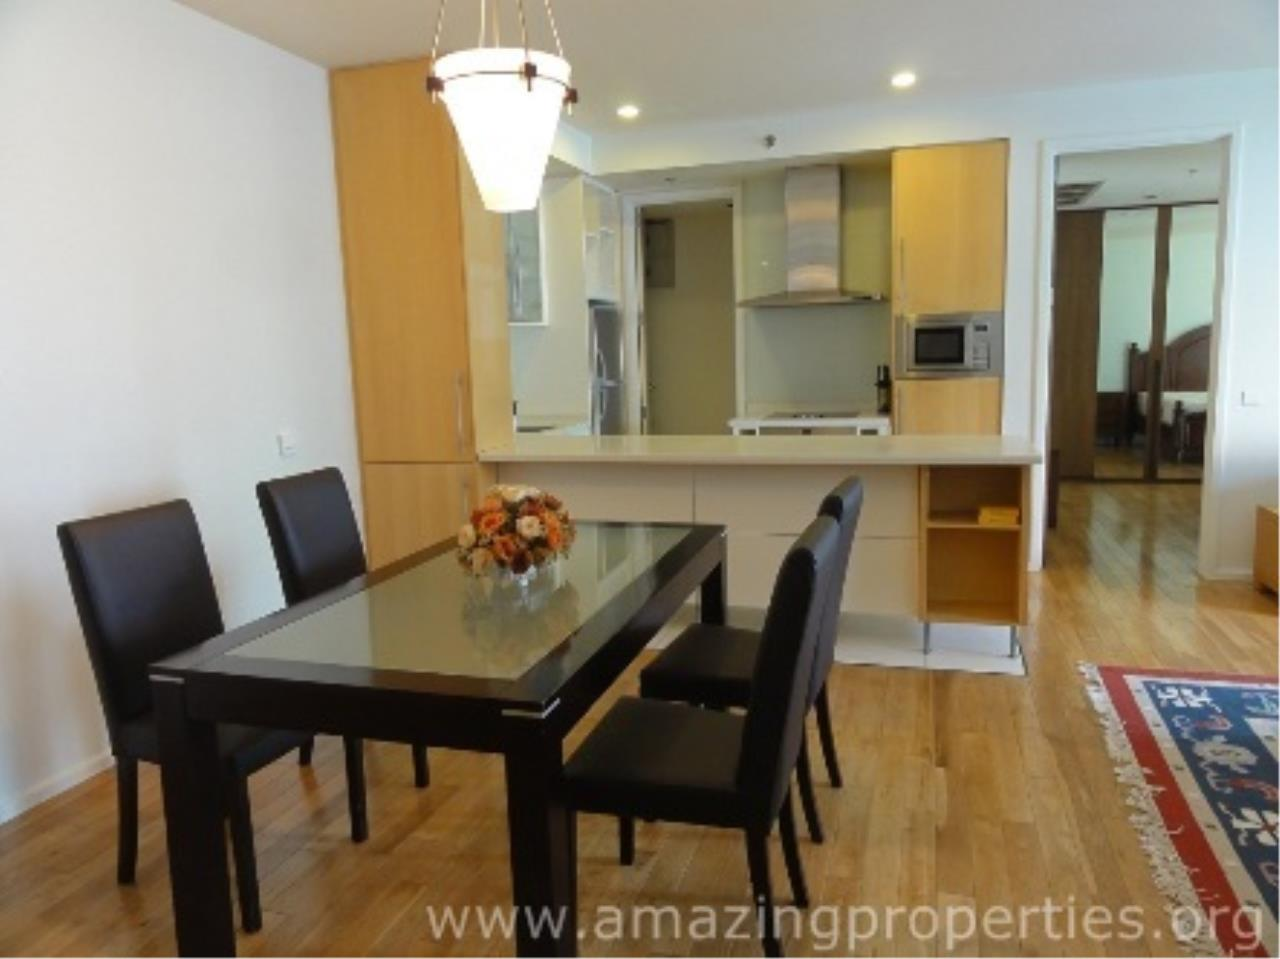 Amazing Properties Agency's 2 bedrooms Apartment for rent/sale 3